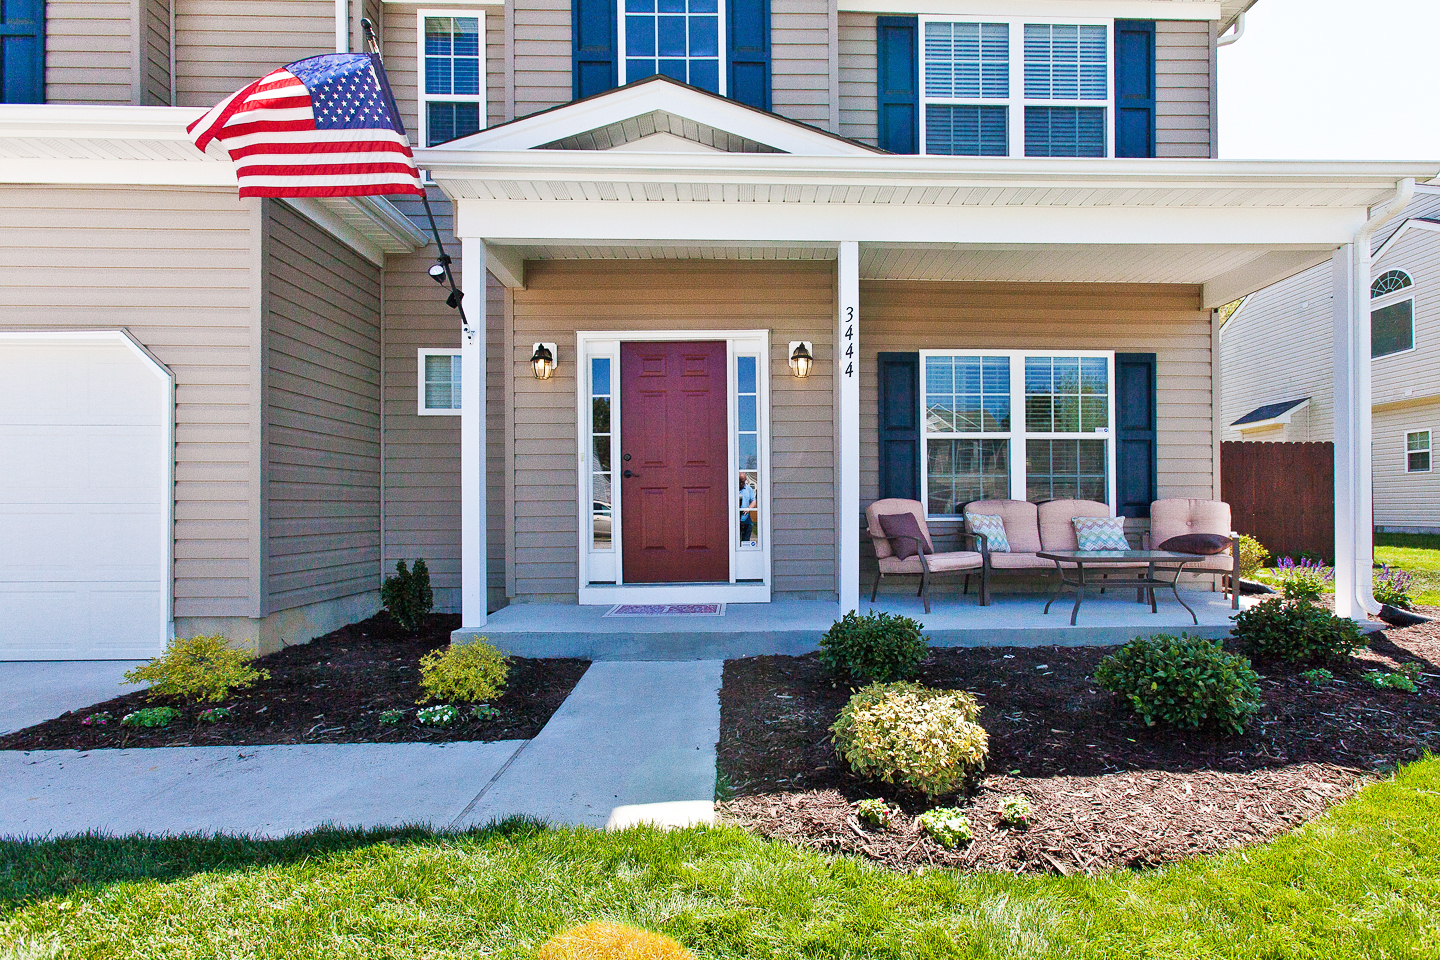 Homes For Sale In Williamsburg VA Compete In The Marketplace Based On The  Major Search Criteria That Have Long Been In Place: Location, Architectural  Style, ...